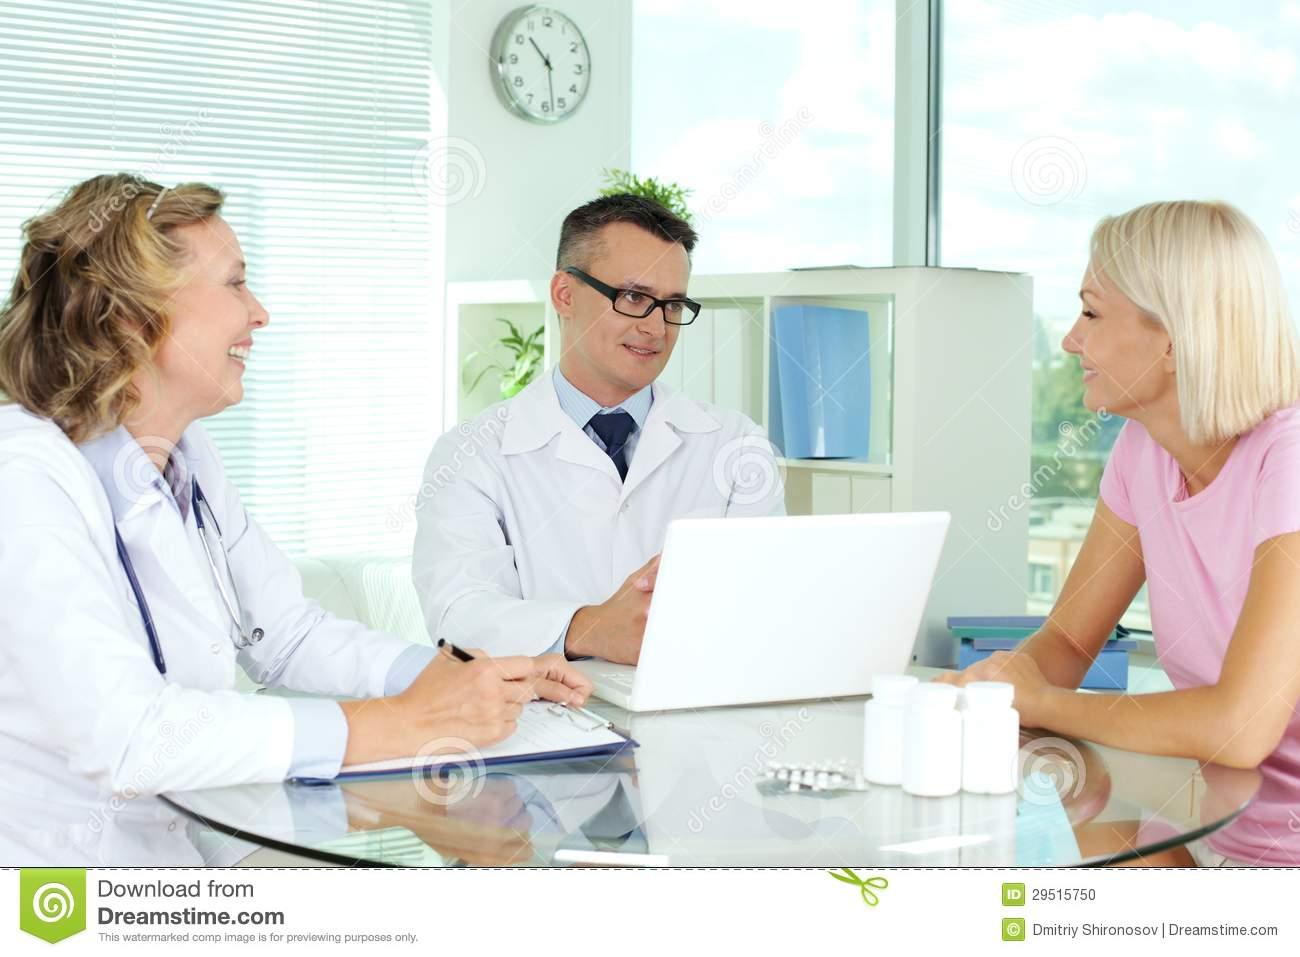 Doctors interacting with patient at medical consultation.